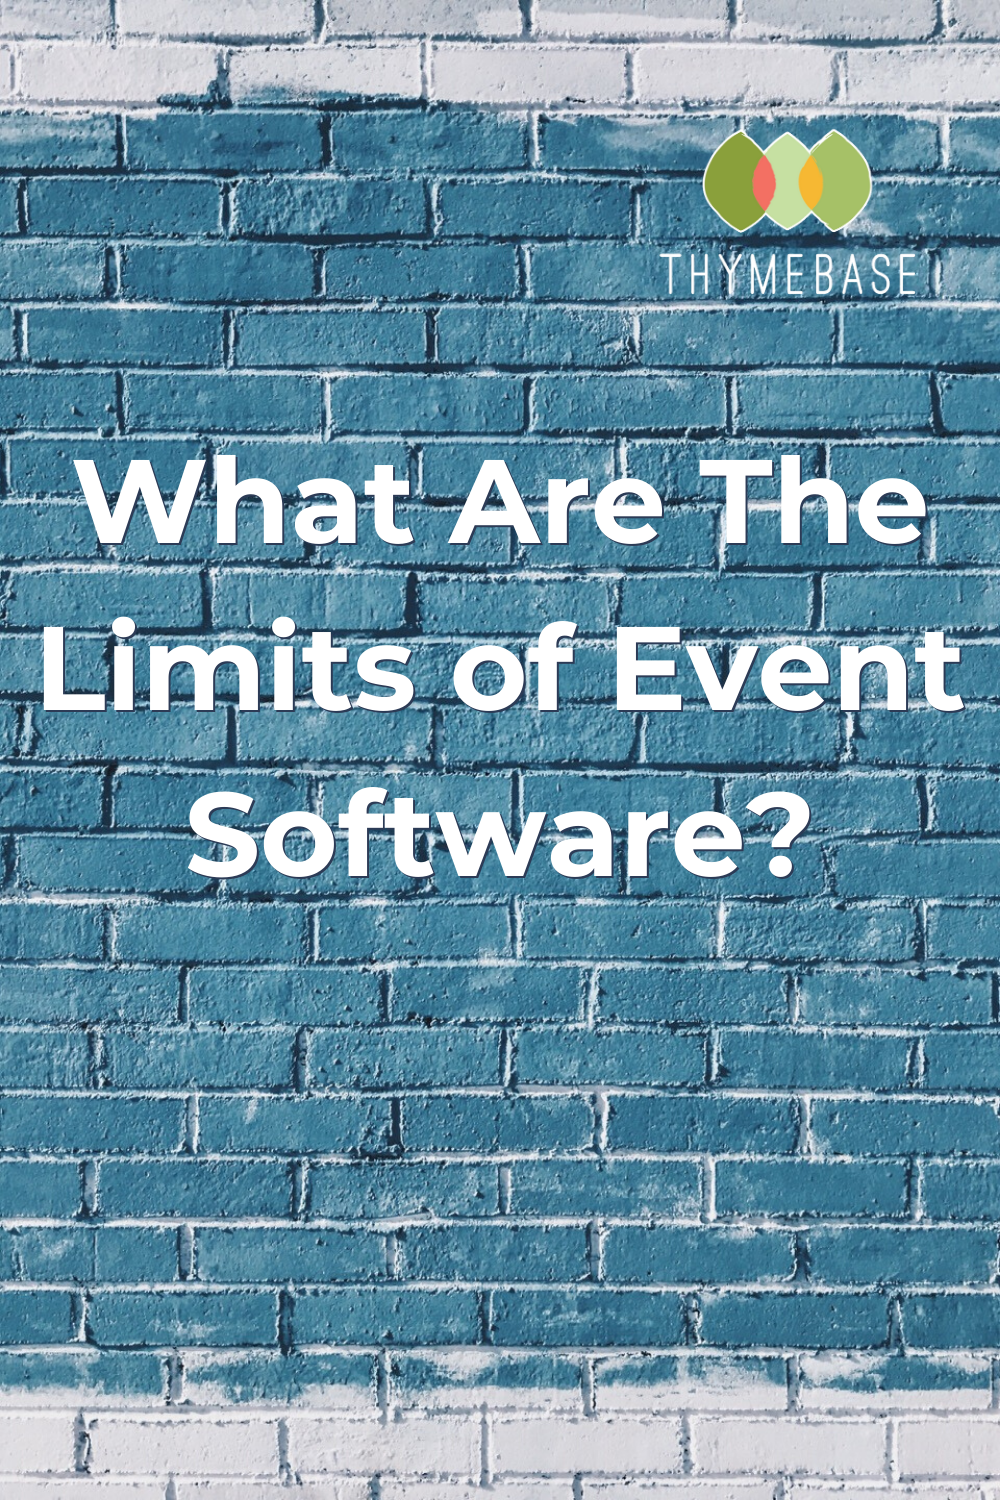 You know the saying about hammers and nails? Well, we don't think like that. We know the limits of event software. And that's actually a good thing. . . . . . #eventtech #eventtechnology #eventprofs #event #eventdesign #eventmanagement #eventplanner #eventplanners #eventplanning #events #meetings #partyplanner #weddingplanner #corporateevents #thymebase